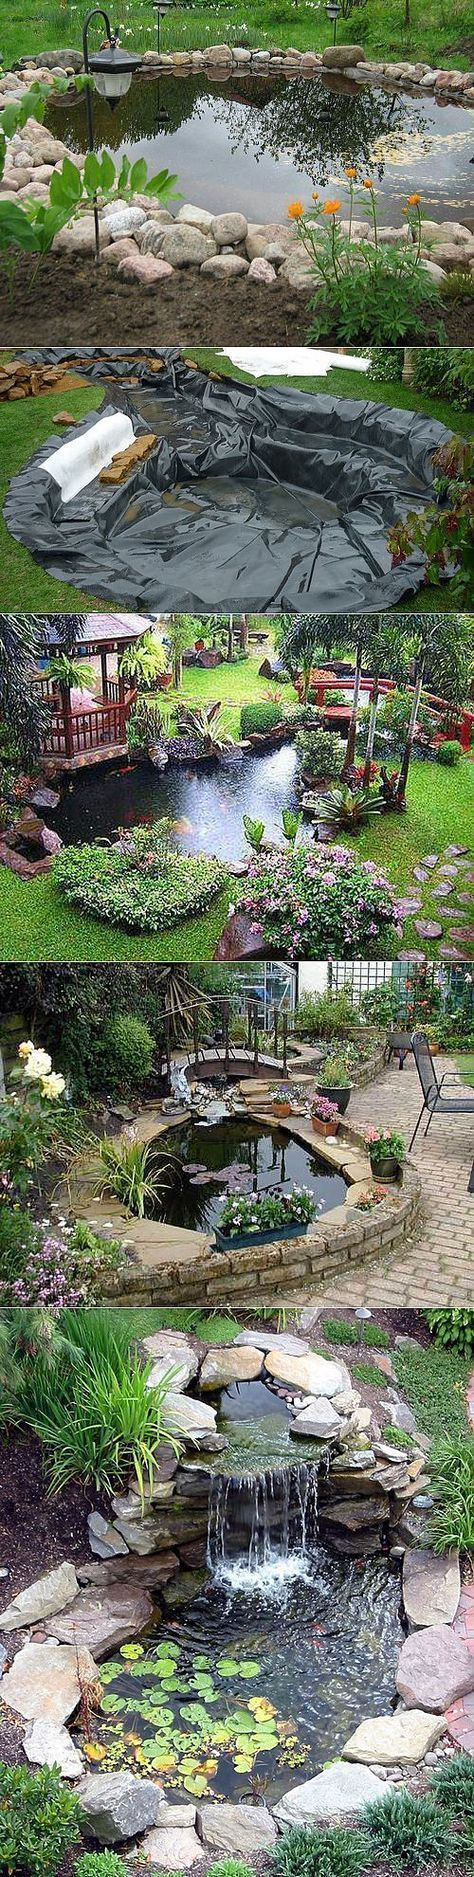 15 Most Clever Rock Fountain Ideas for